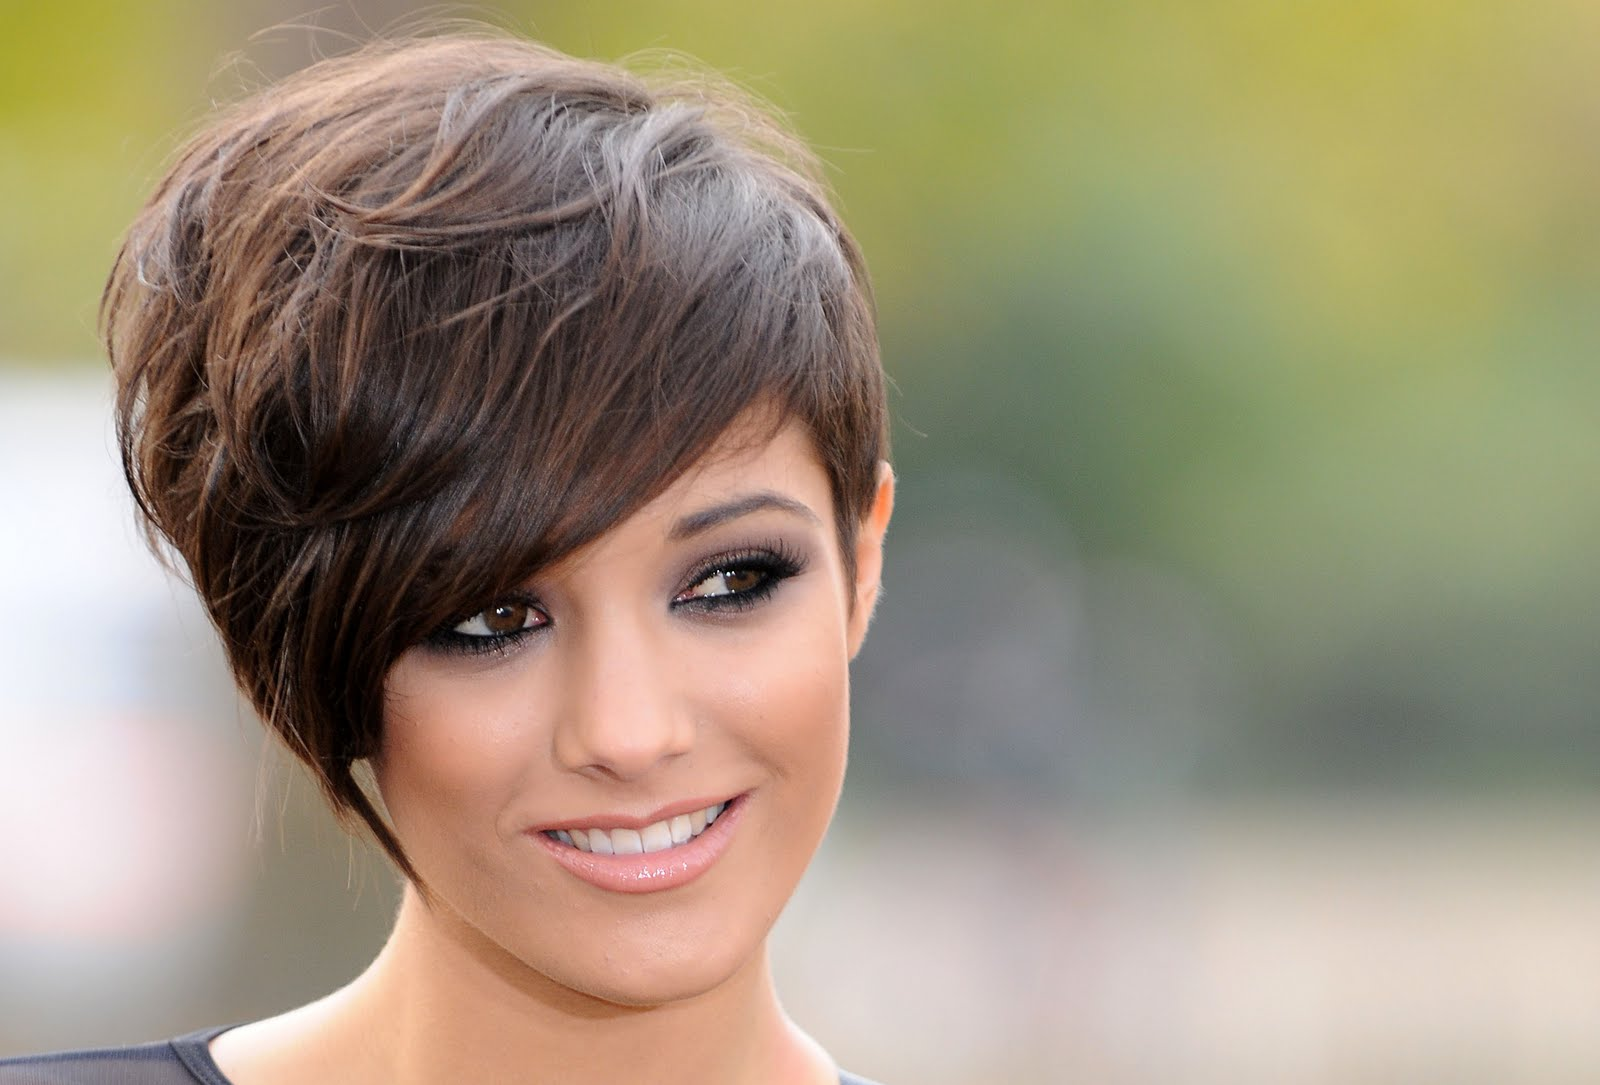 Magnificent 1000 Images About Hair On Pinterest Stacked Bobs Cute Short Short Hairstyles Gunalazisus